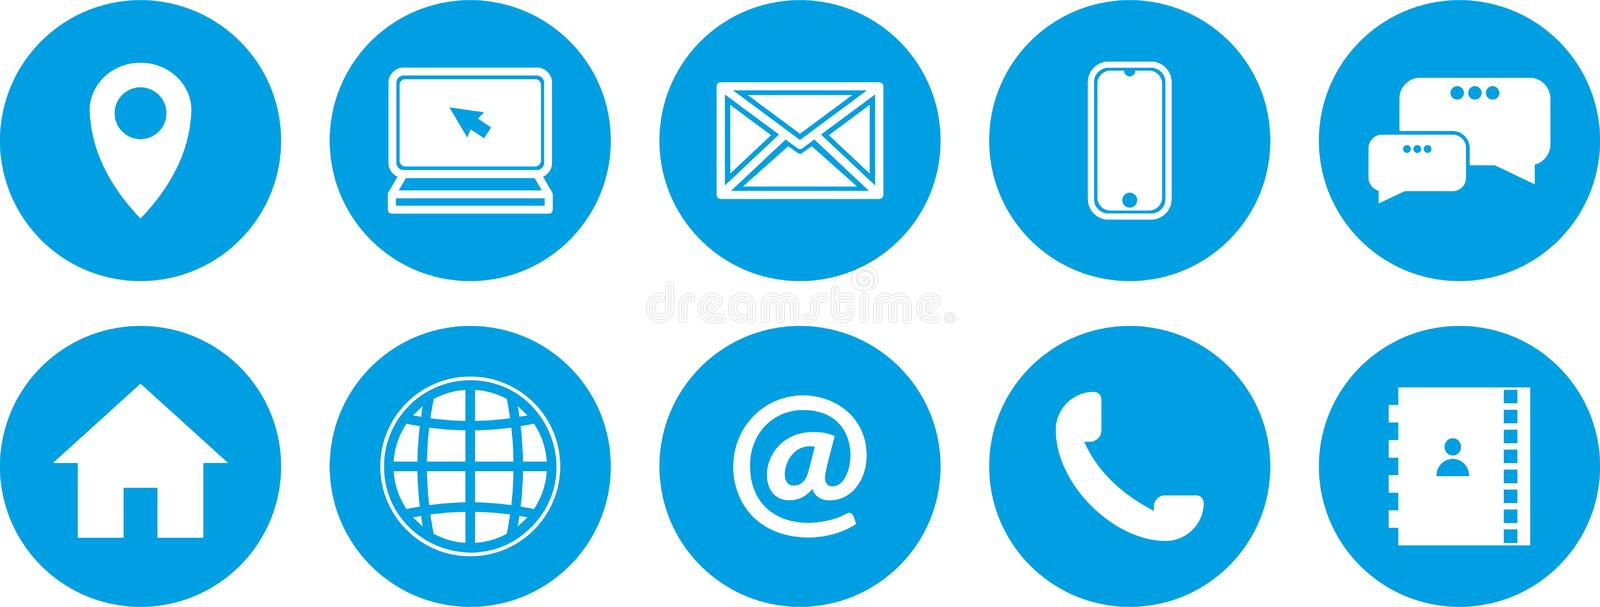 Blue icons set. blue buttons set. new communication icons royalty free illustration